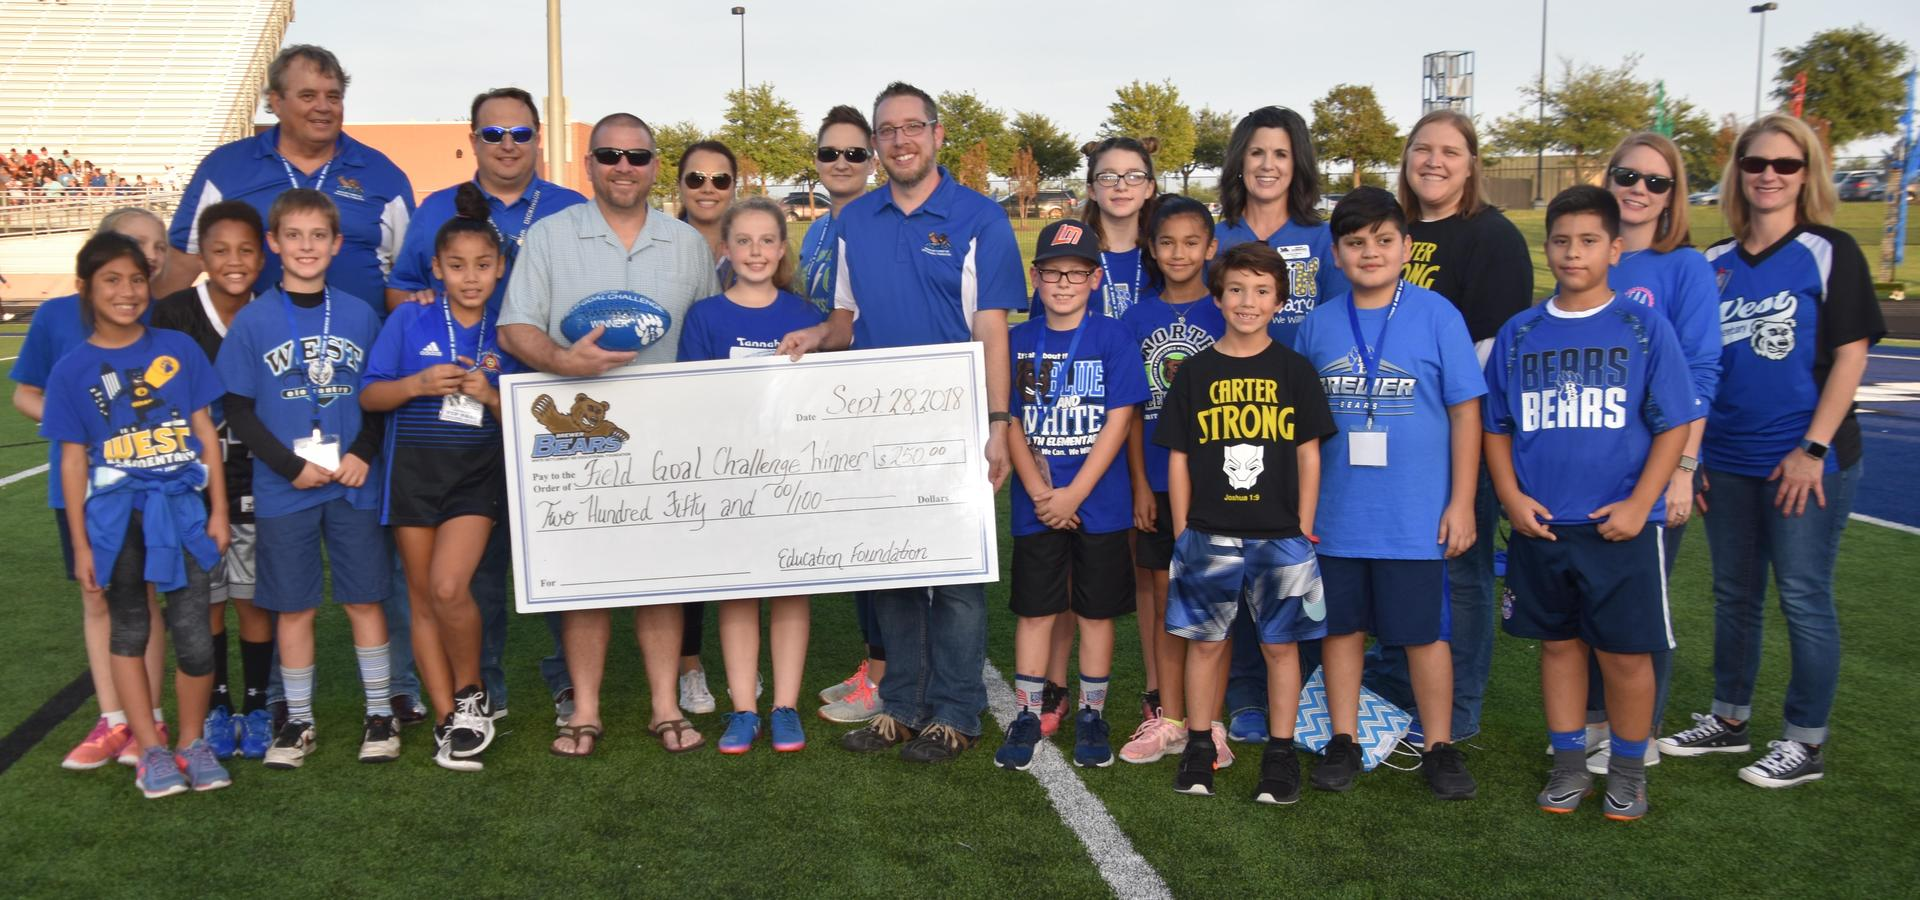 Tannahil Student Wins Annual Field Goal Challenge.